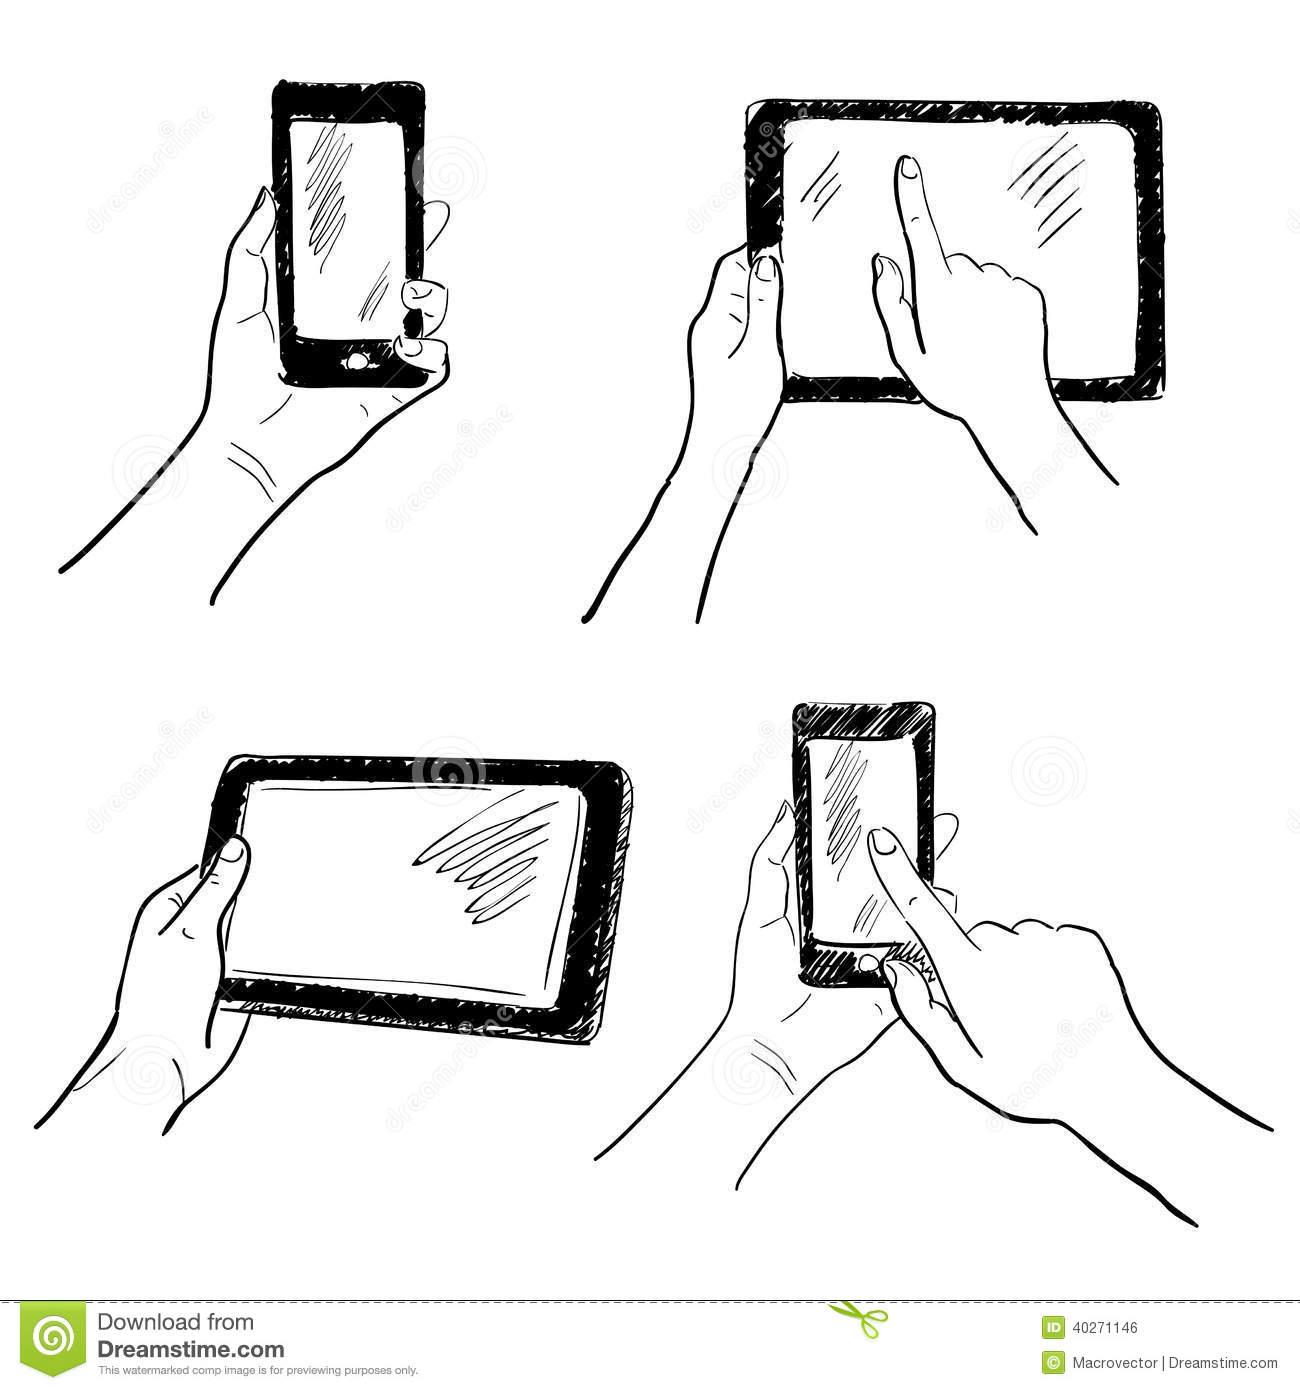 201296903690 as well Aosn as well Ford Iosis Max Concept Tags Concept further Kapsys Smartvision 2 Premium besides Lg Files For Patent Application Of Foldable Transparent Touchscreen 20161007. on touch screen phones